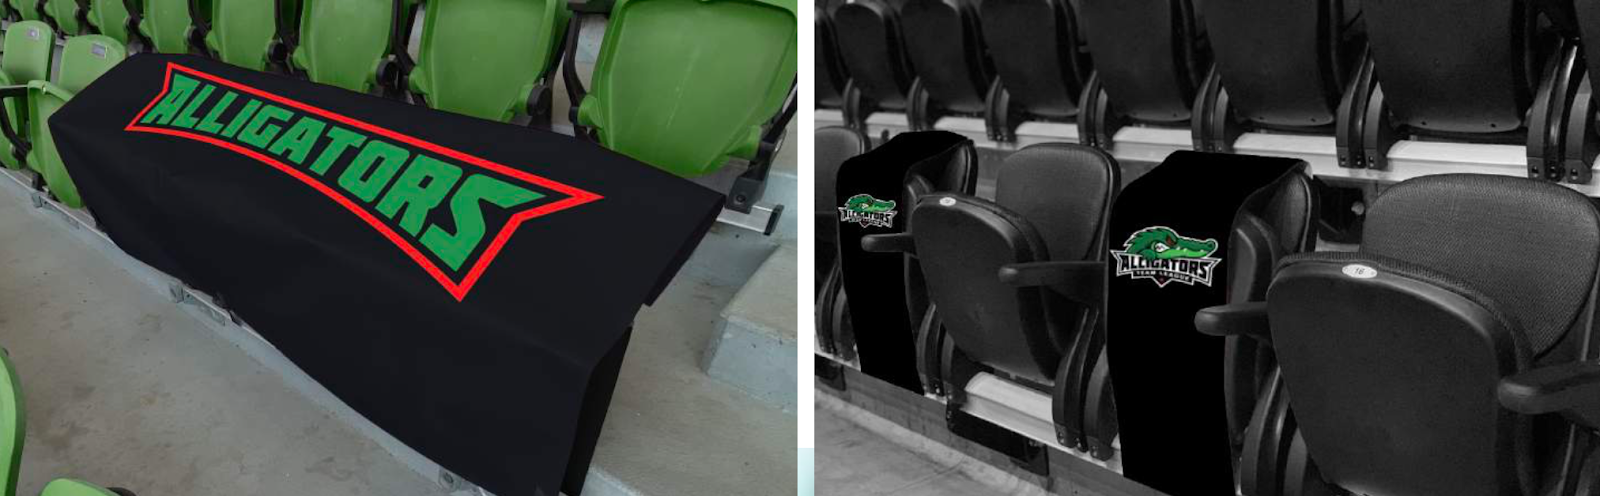 Examples of social distancing print graphics for stadiums